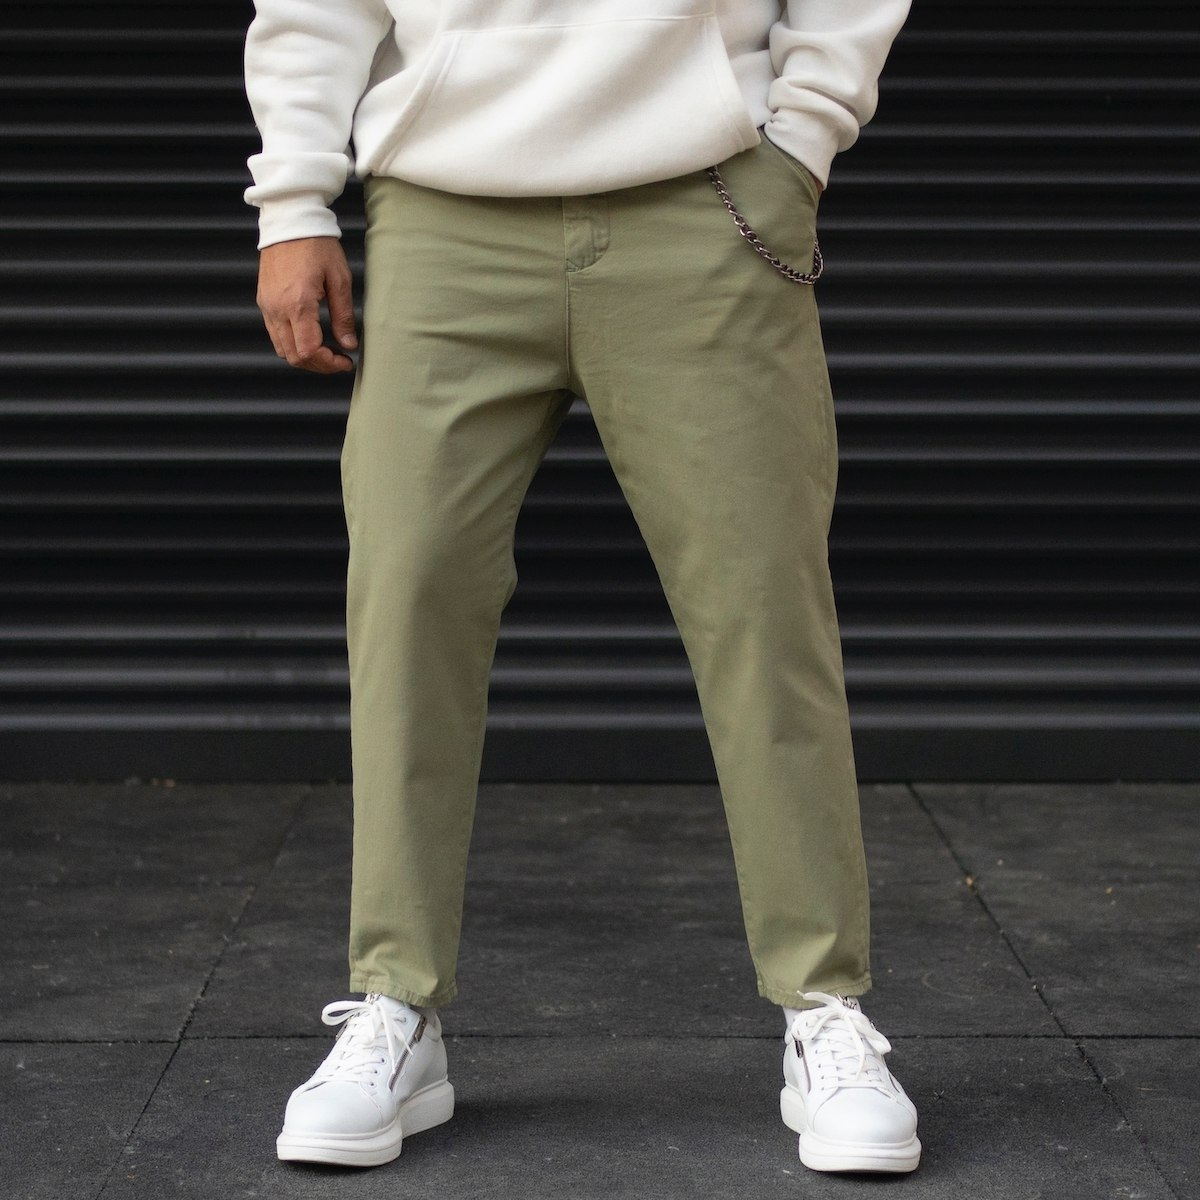 Men's Oversize Boyfriend Basic Jeans With Chain Detail In Olive Green